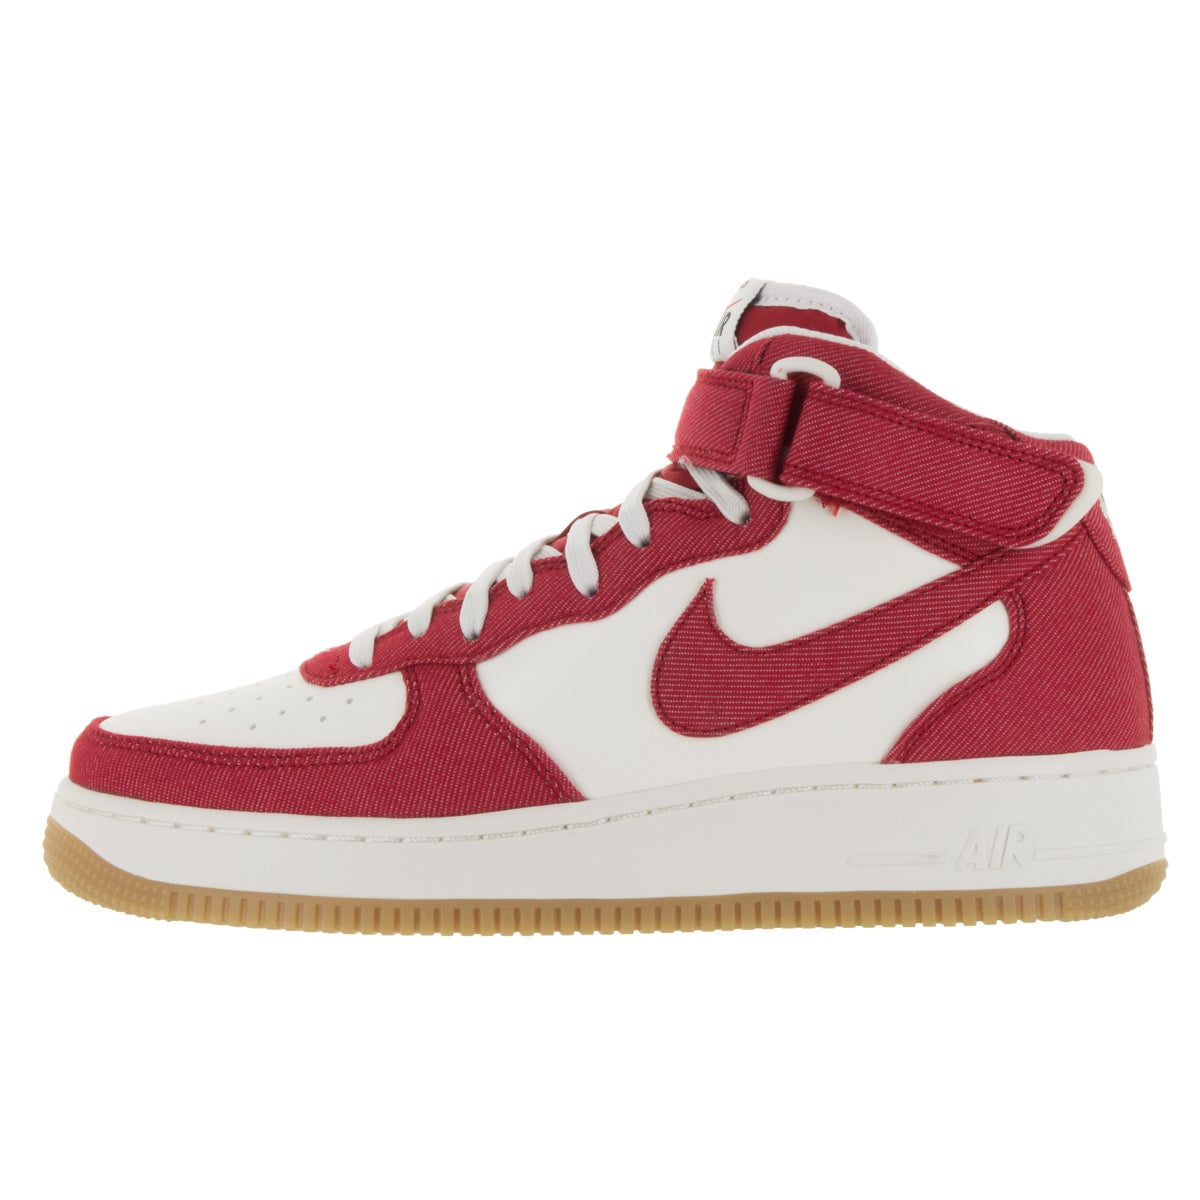 best authentic d405f a4185 Shop Nike Men s Air Force 1 Mid  07 Red Basketball Shoes - Free Shipping  Today - Overstock - 13984276